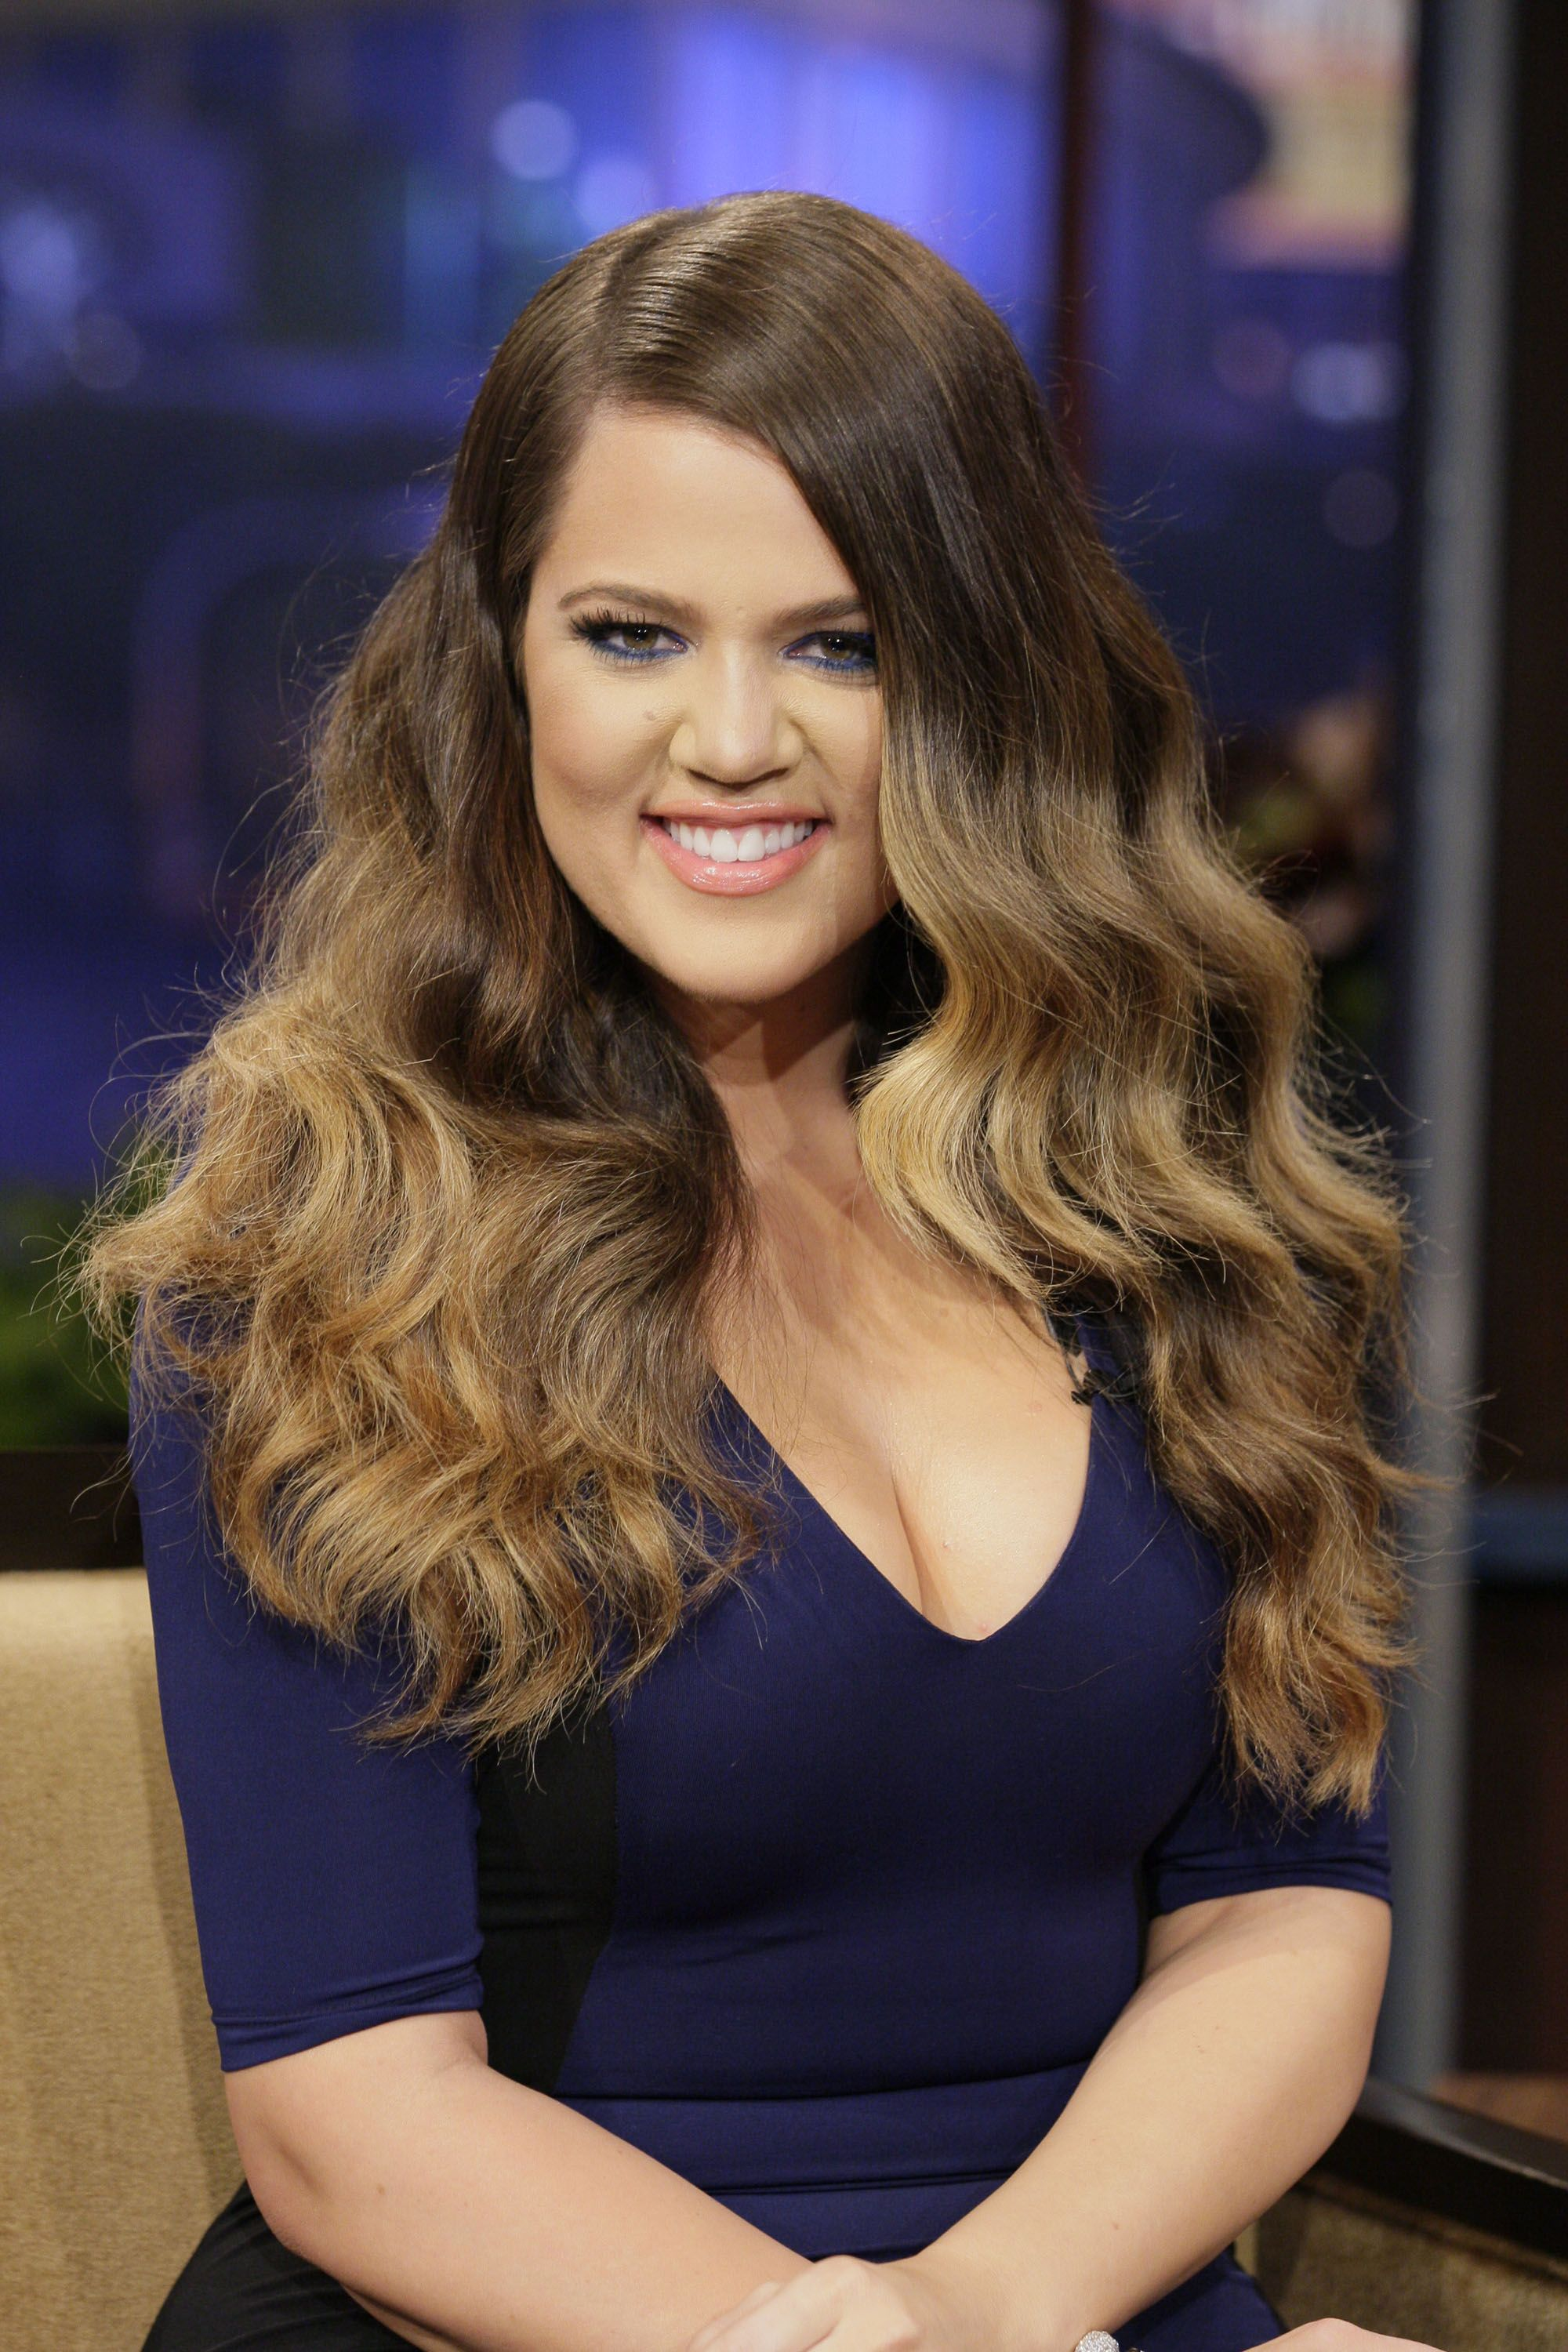 Wavy Hairstyles Glamorous Khloe On Leno Last Night Wearing Kardashian Kollection Color Block